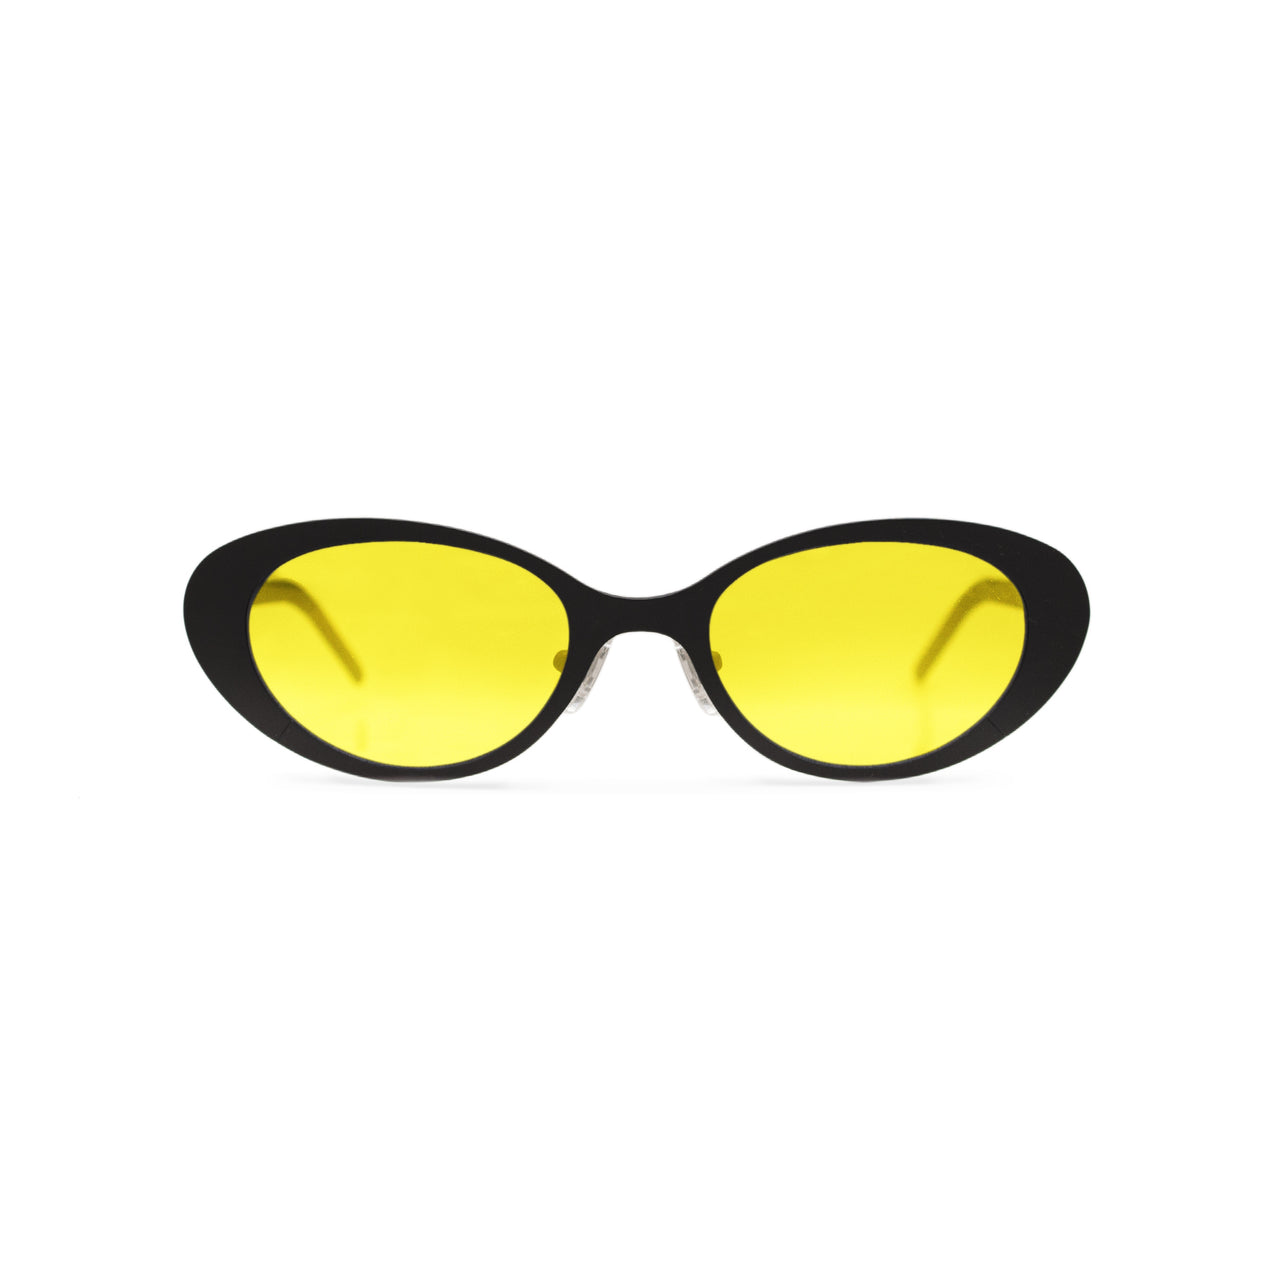 Metal. Matte Black. Saffron Lens. - BLYSZAK eyewear eyewear - eyewear, optical, sunglasses